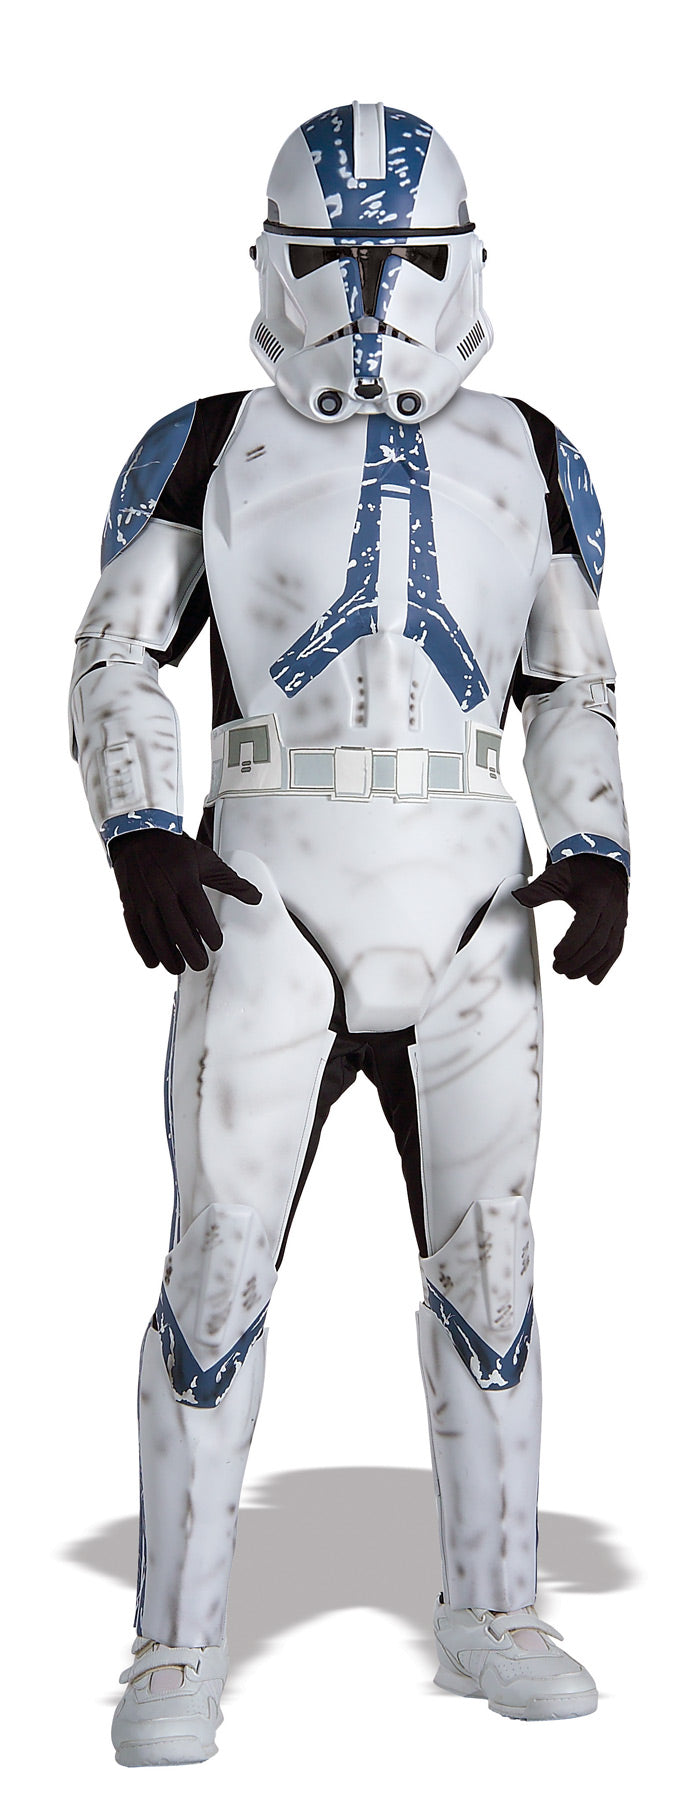 Boy's Costumes, Clone Halloween Costume, Clone Trooper Lg Boys Costume, Halloween Costumes, Star Wars Costume